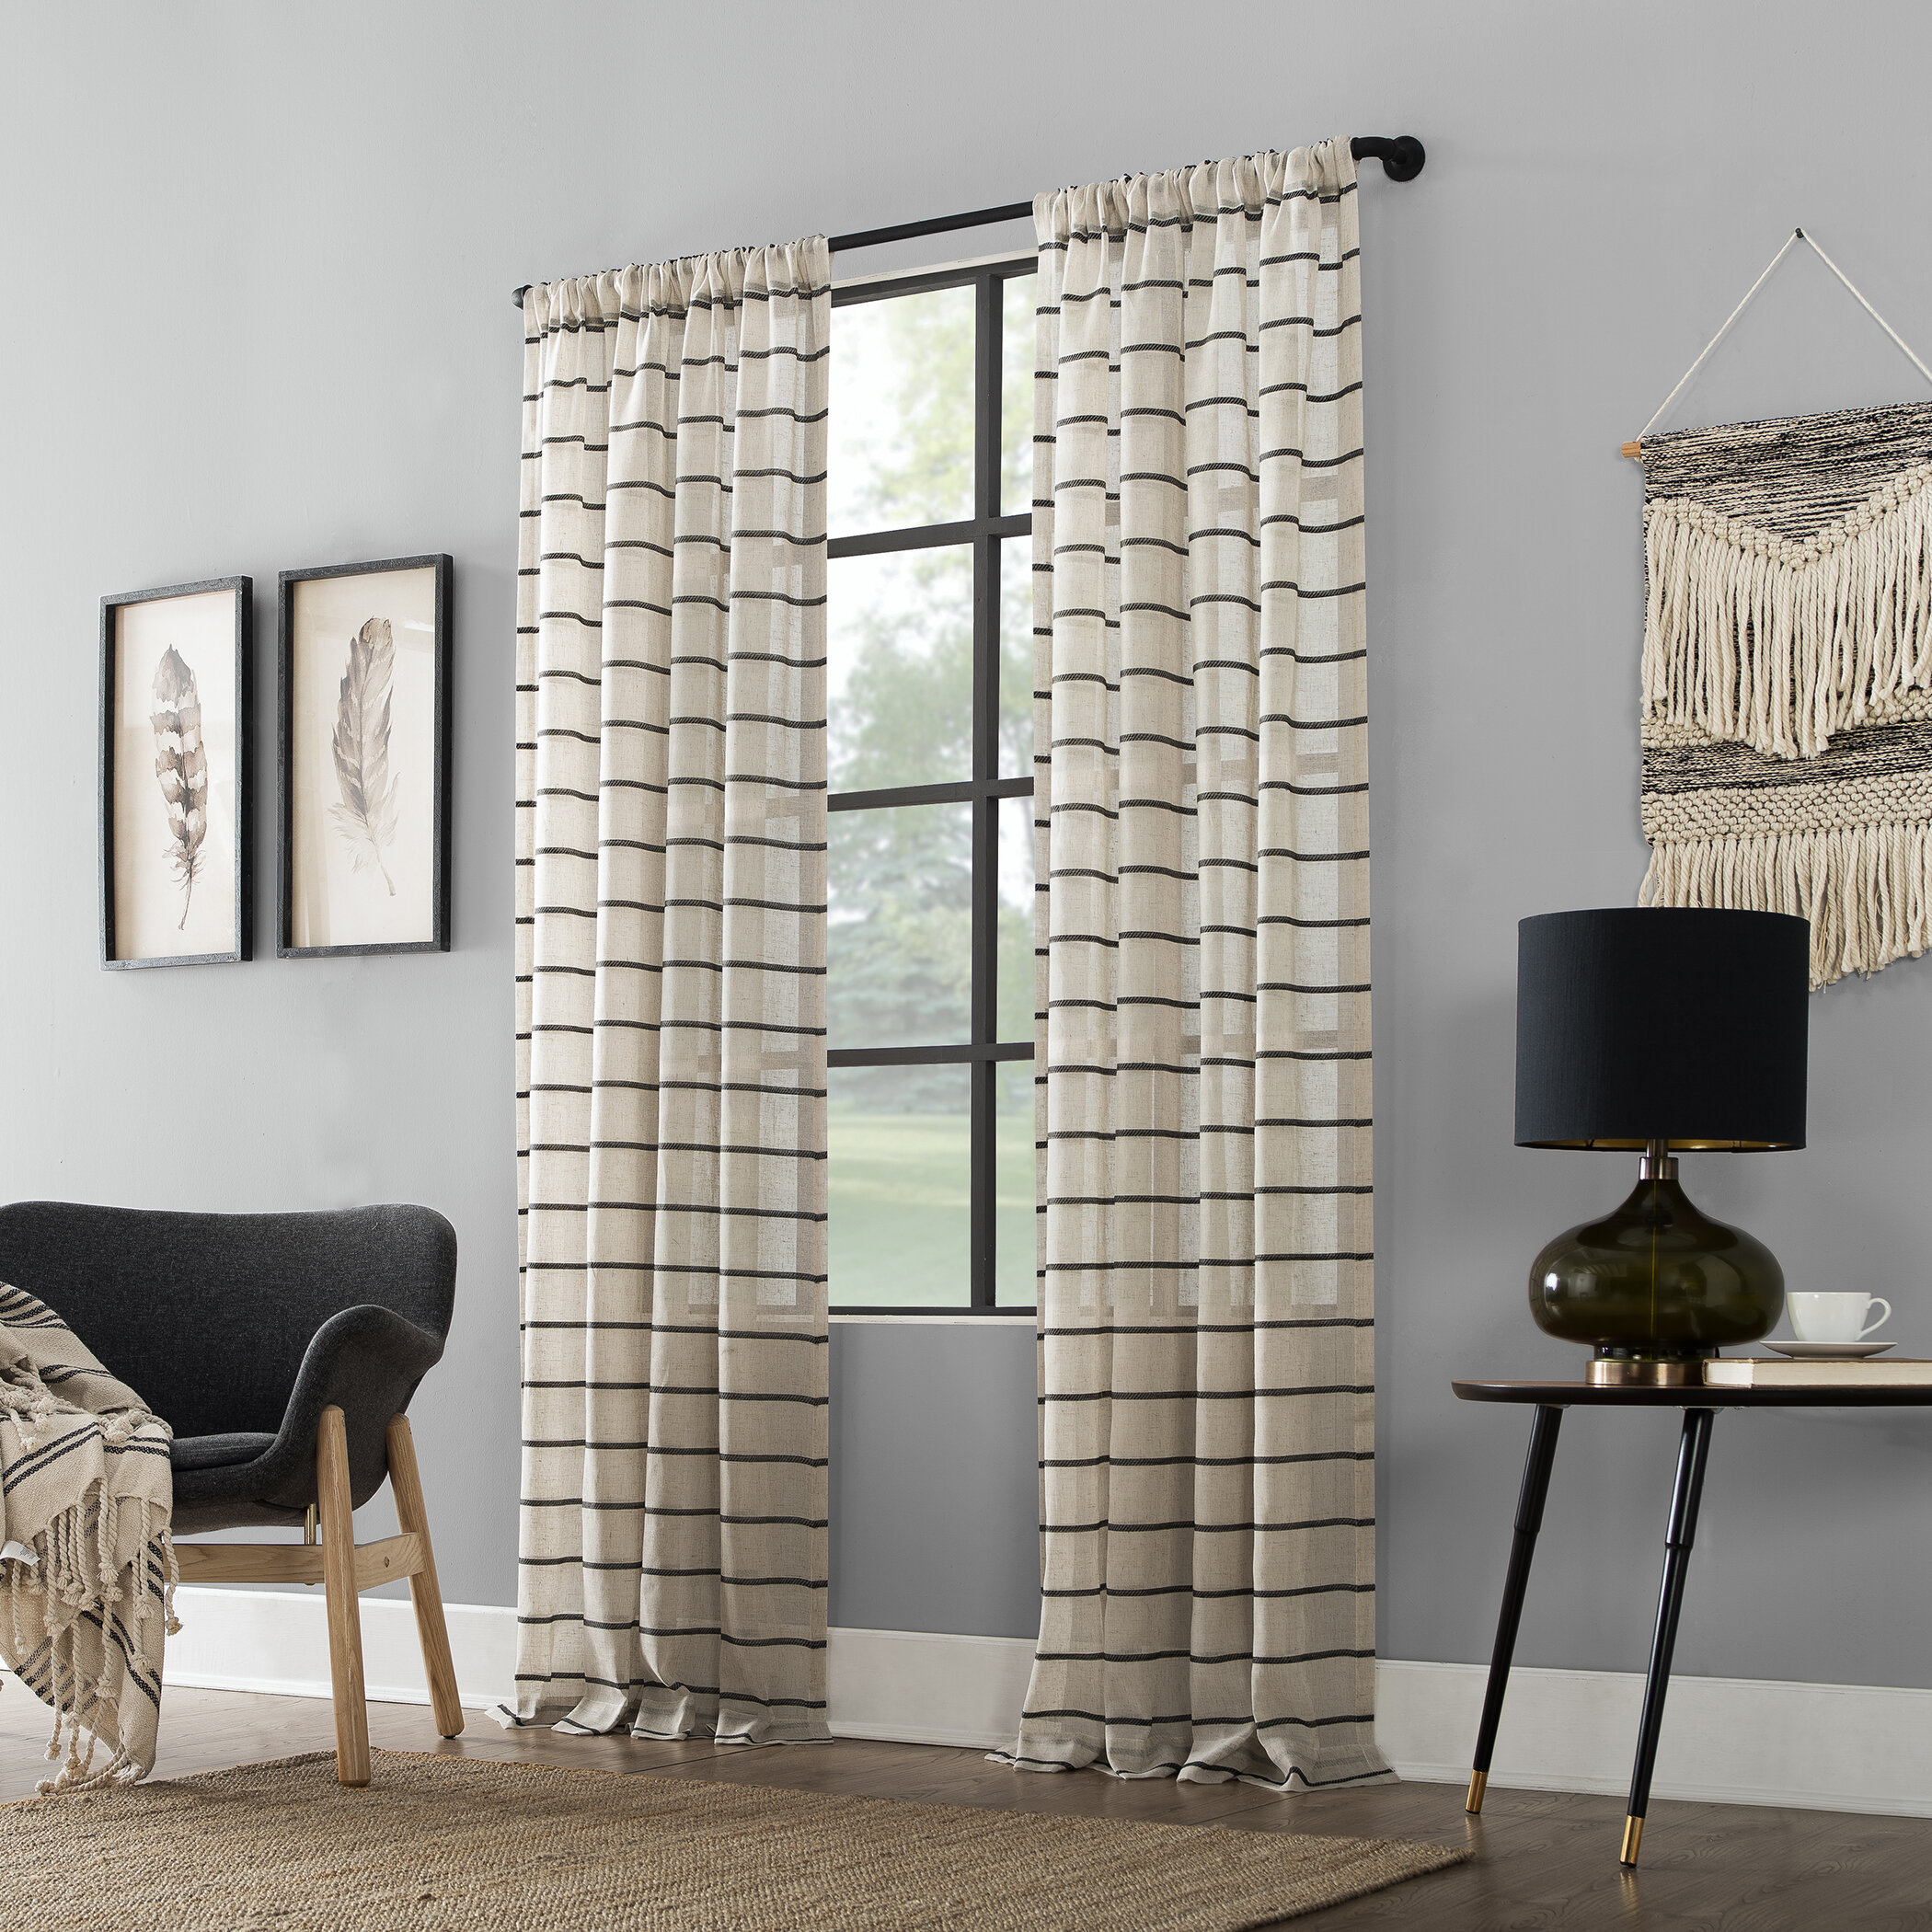 Twill Anti Dust Striped Semi Sheer Rod Pocket Curtain Panel Pertaining To Ladonna Rod Pocket Solid Semi Sheer Window Curtain Panels (View 14 of 20)